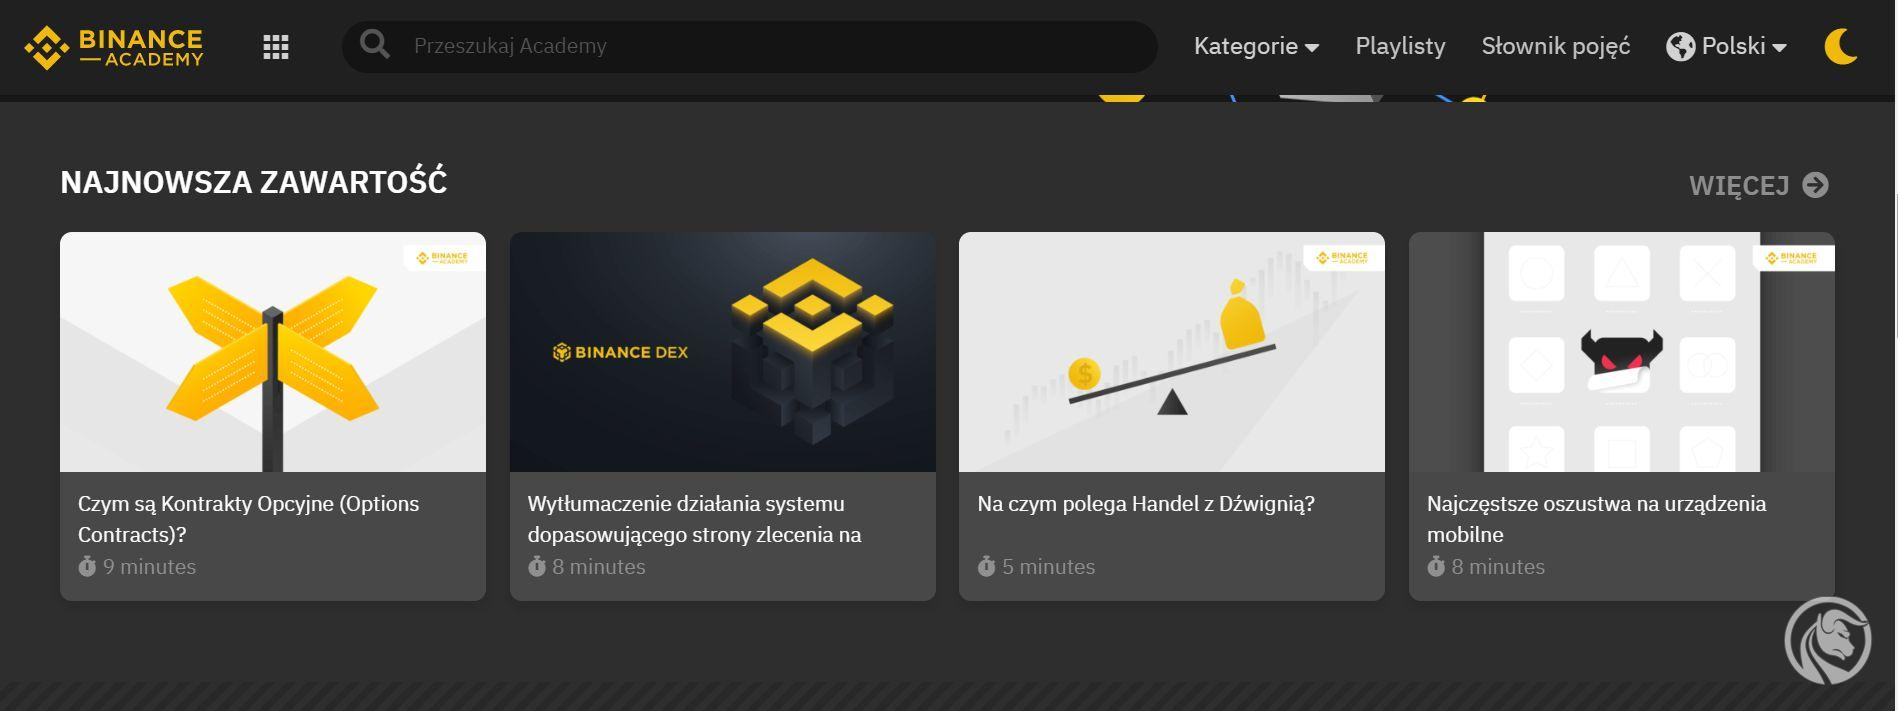 binance academy